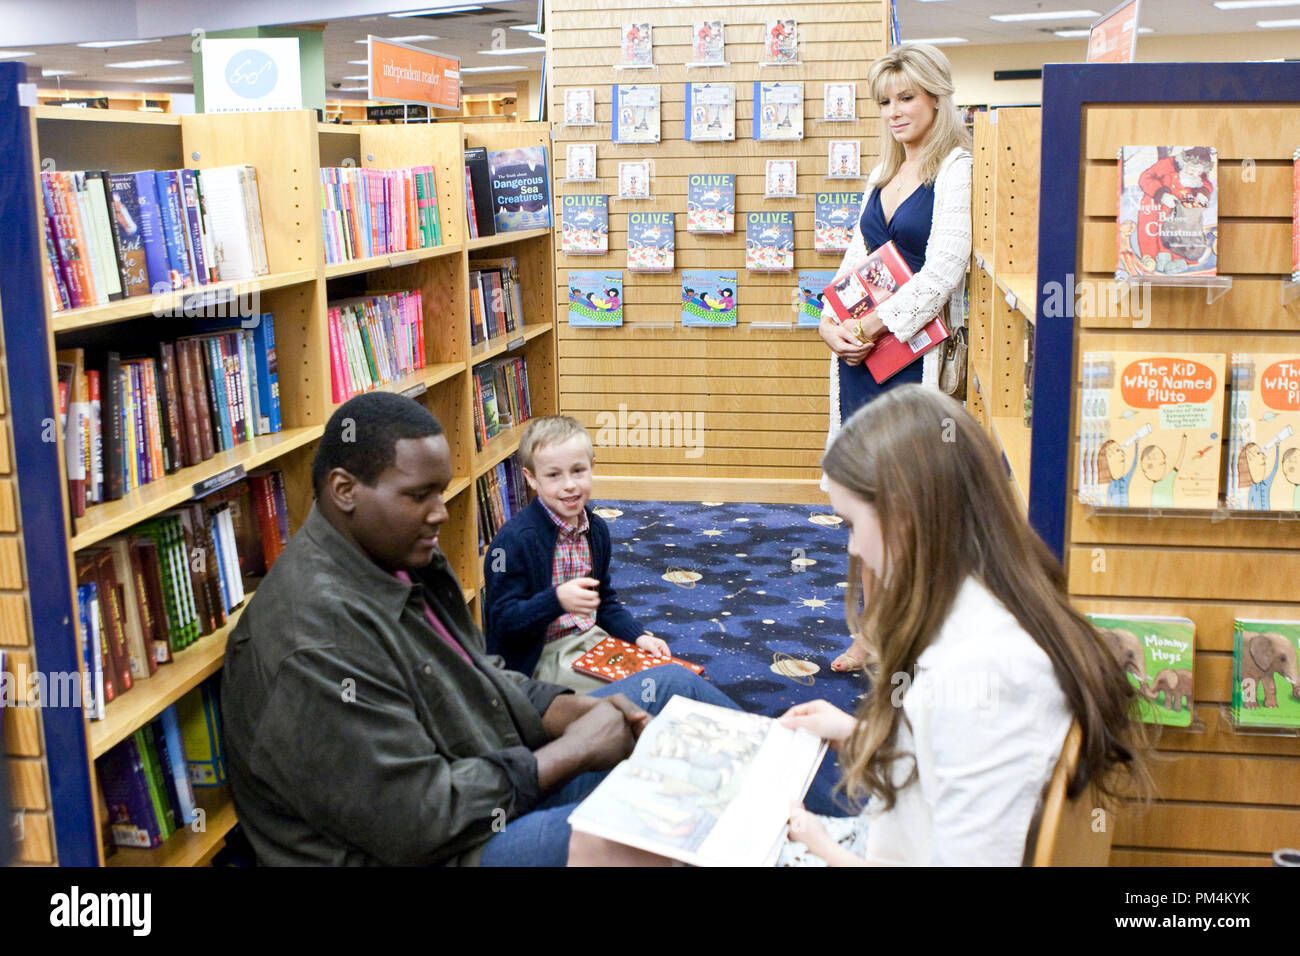 """(L-r) QUINTON AARON as Michael Oher, JAE HEAD as S.J., SANDRA BULLOCK as Leigh Anne Tuohy and LILY COLLINS as Collins in Alcon Entertainment's drama """"The Blind Side,"""" a Warner Bros. Pictures release. - Stock Image"""